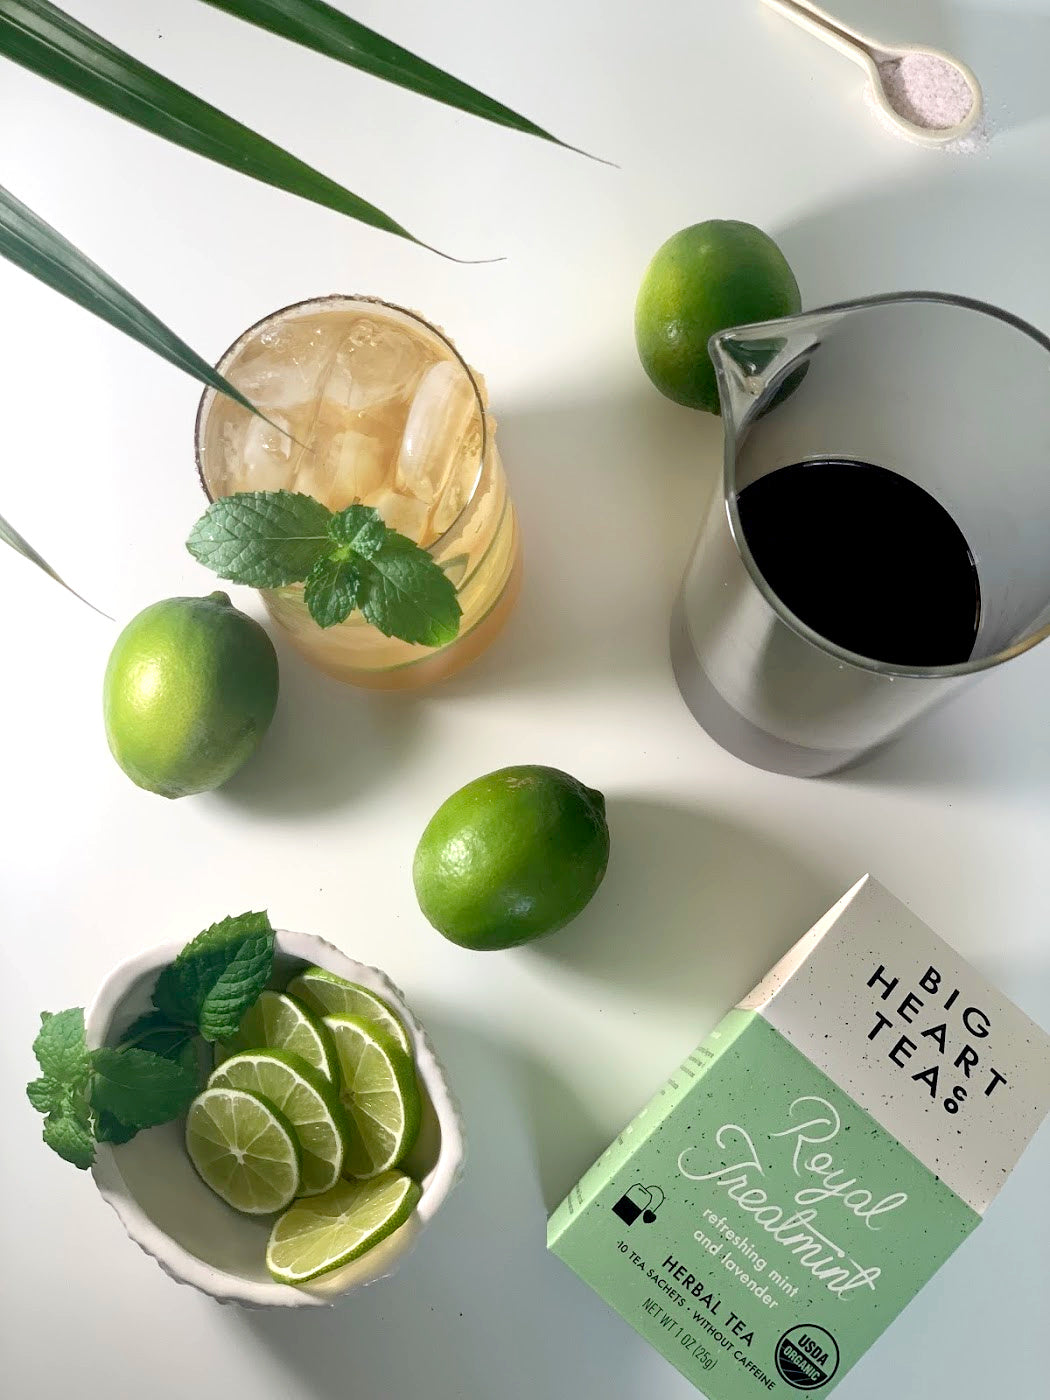 Royal Treatmint and Limes